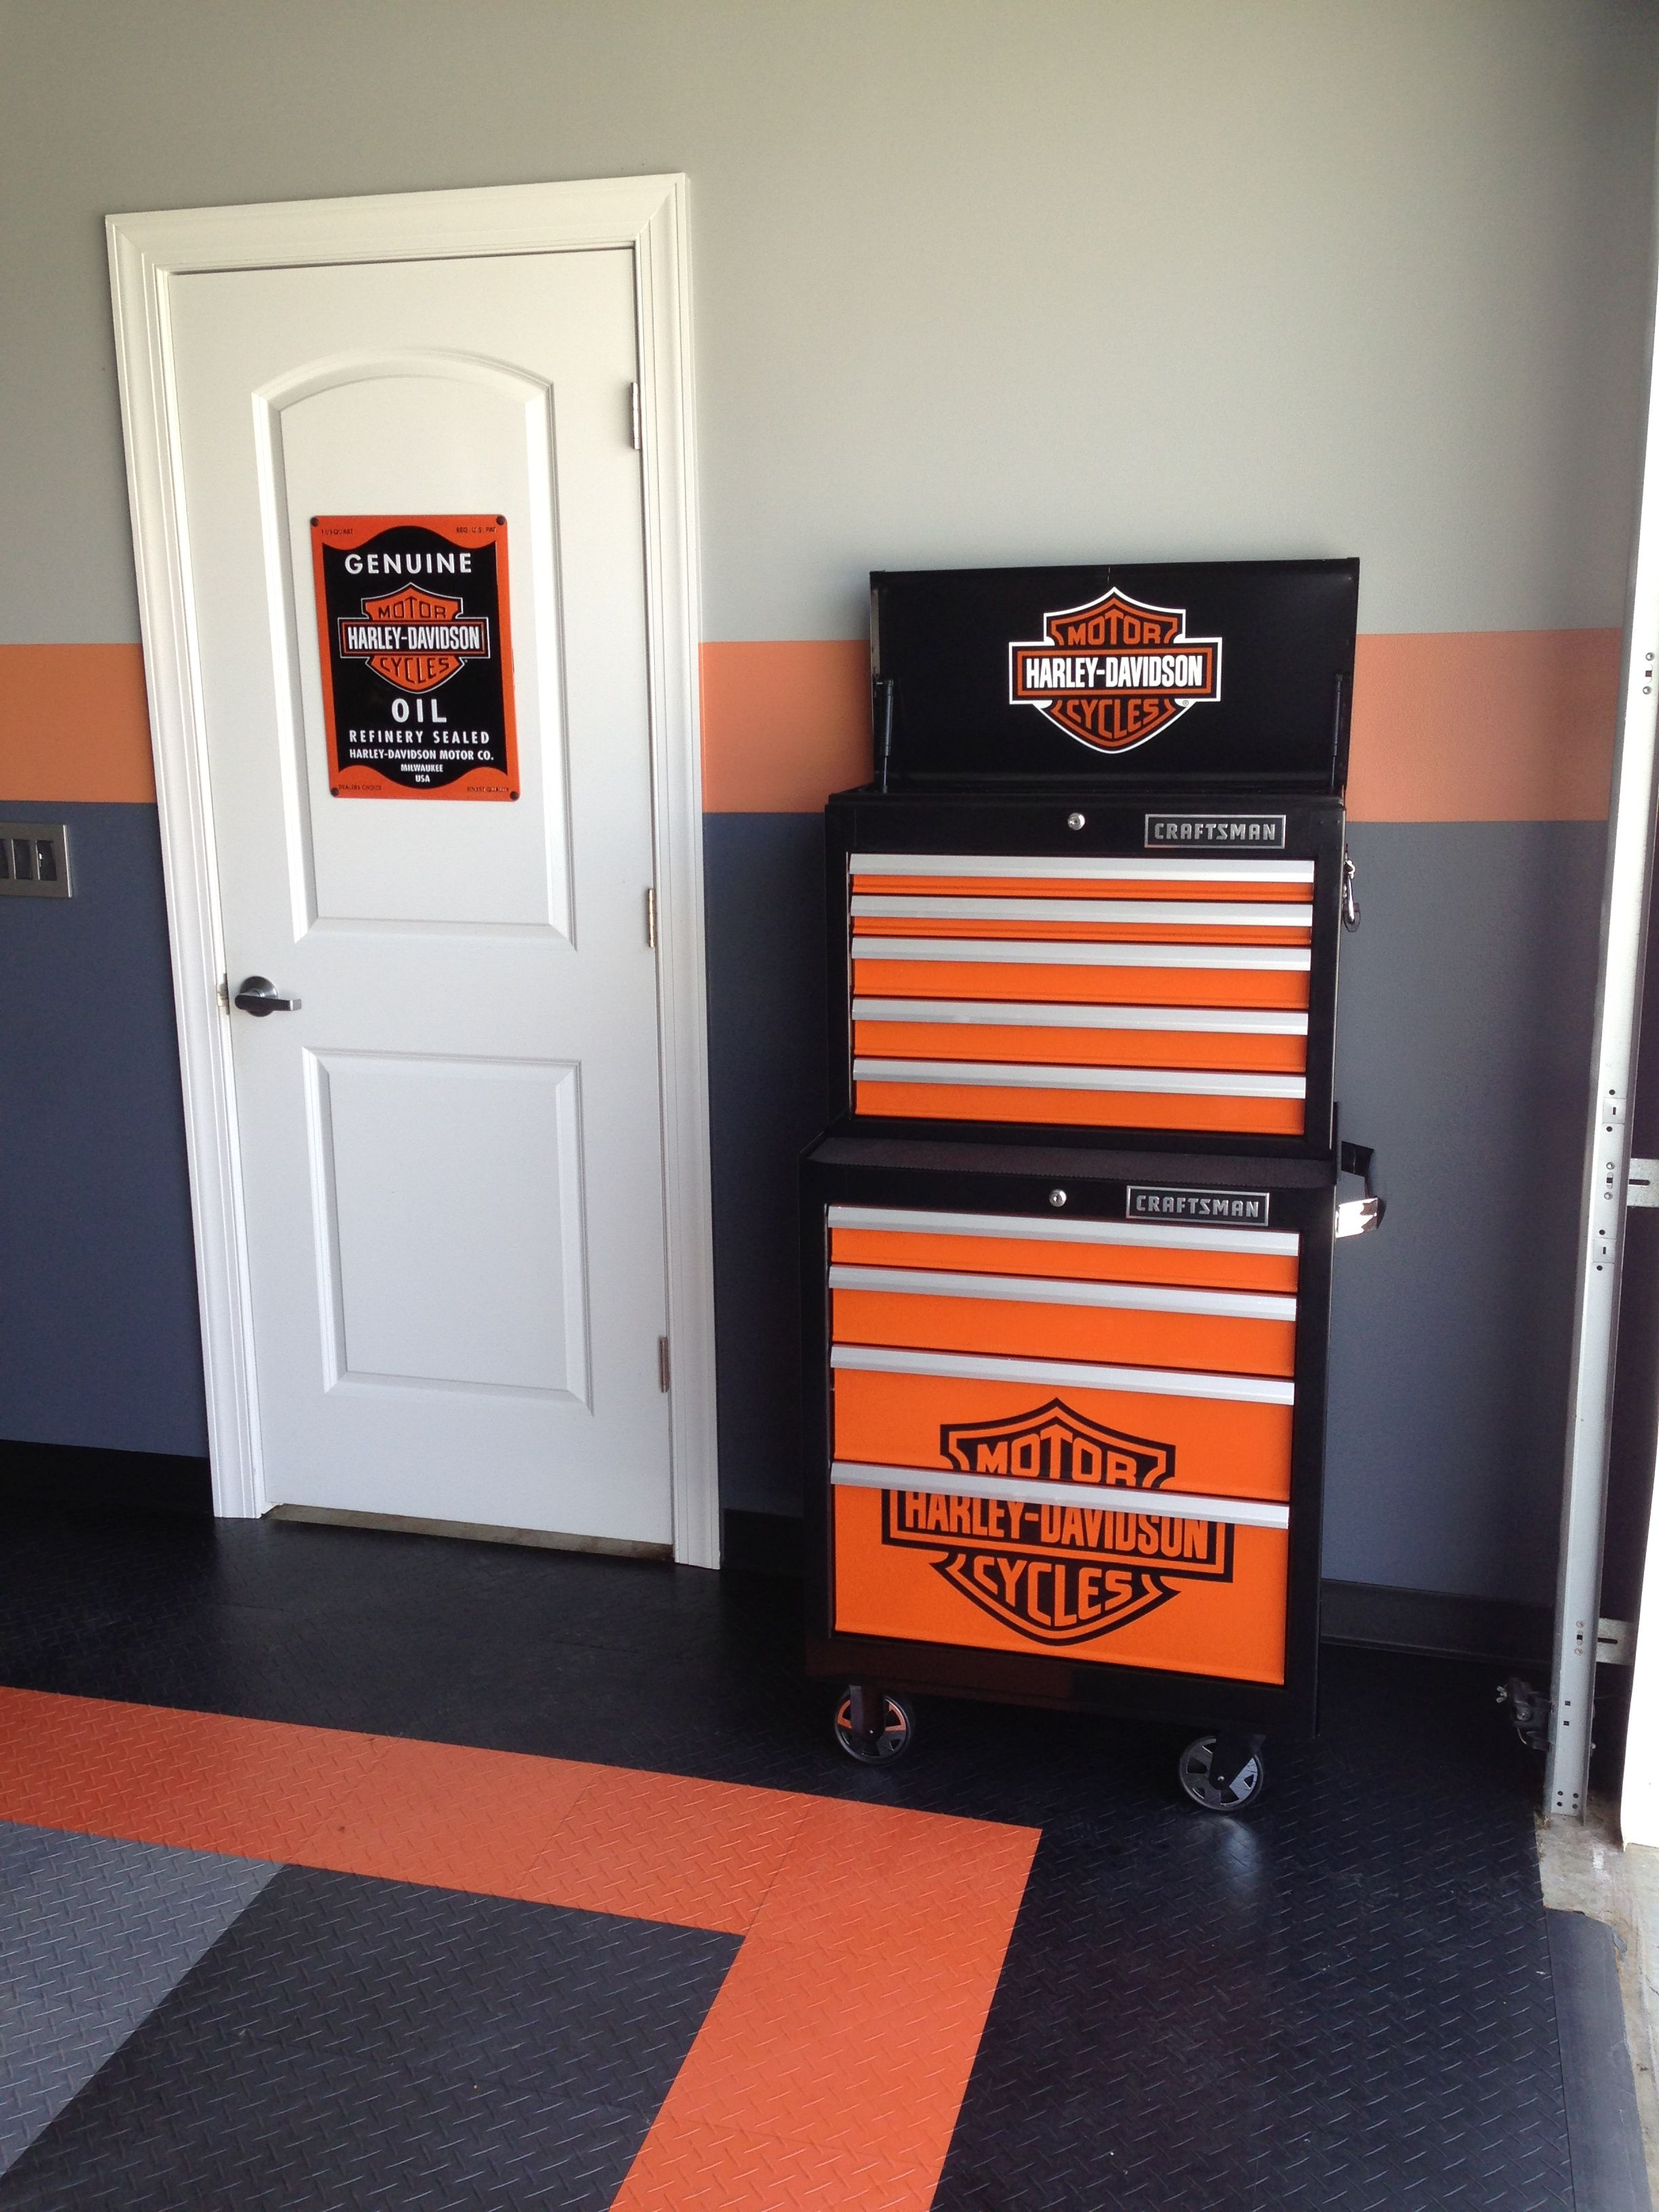 Harley Davidson Craftsman Tool Box Perfect For The Harley